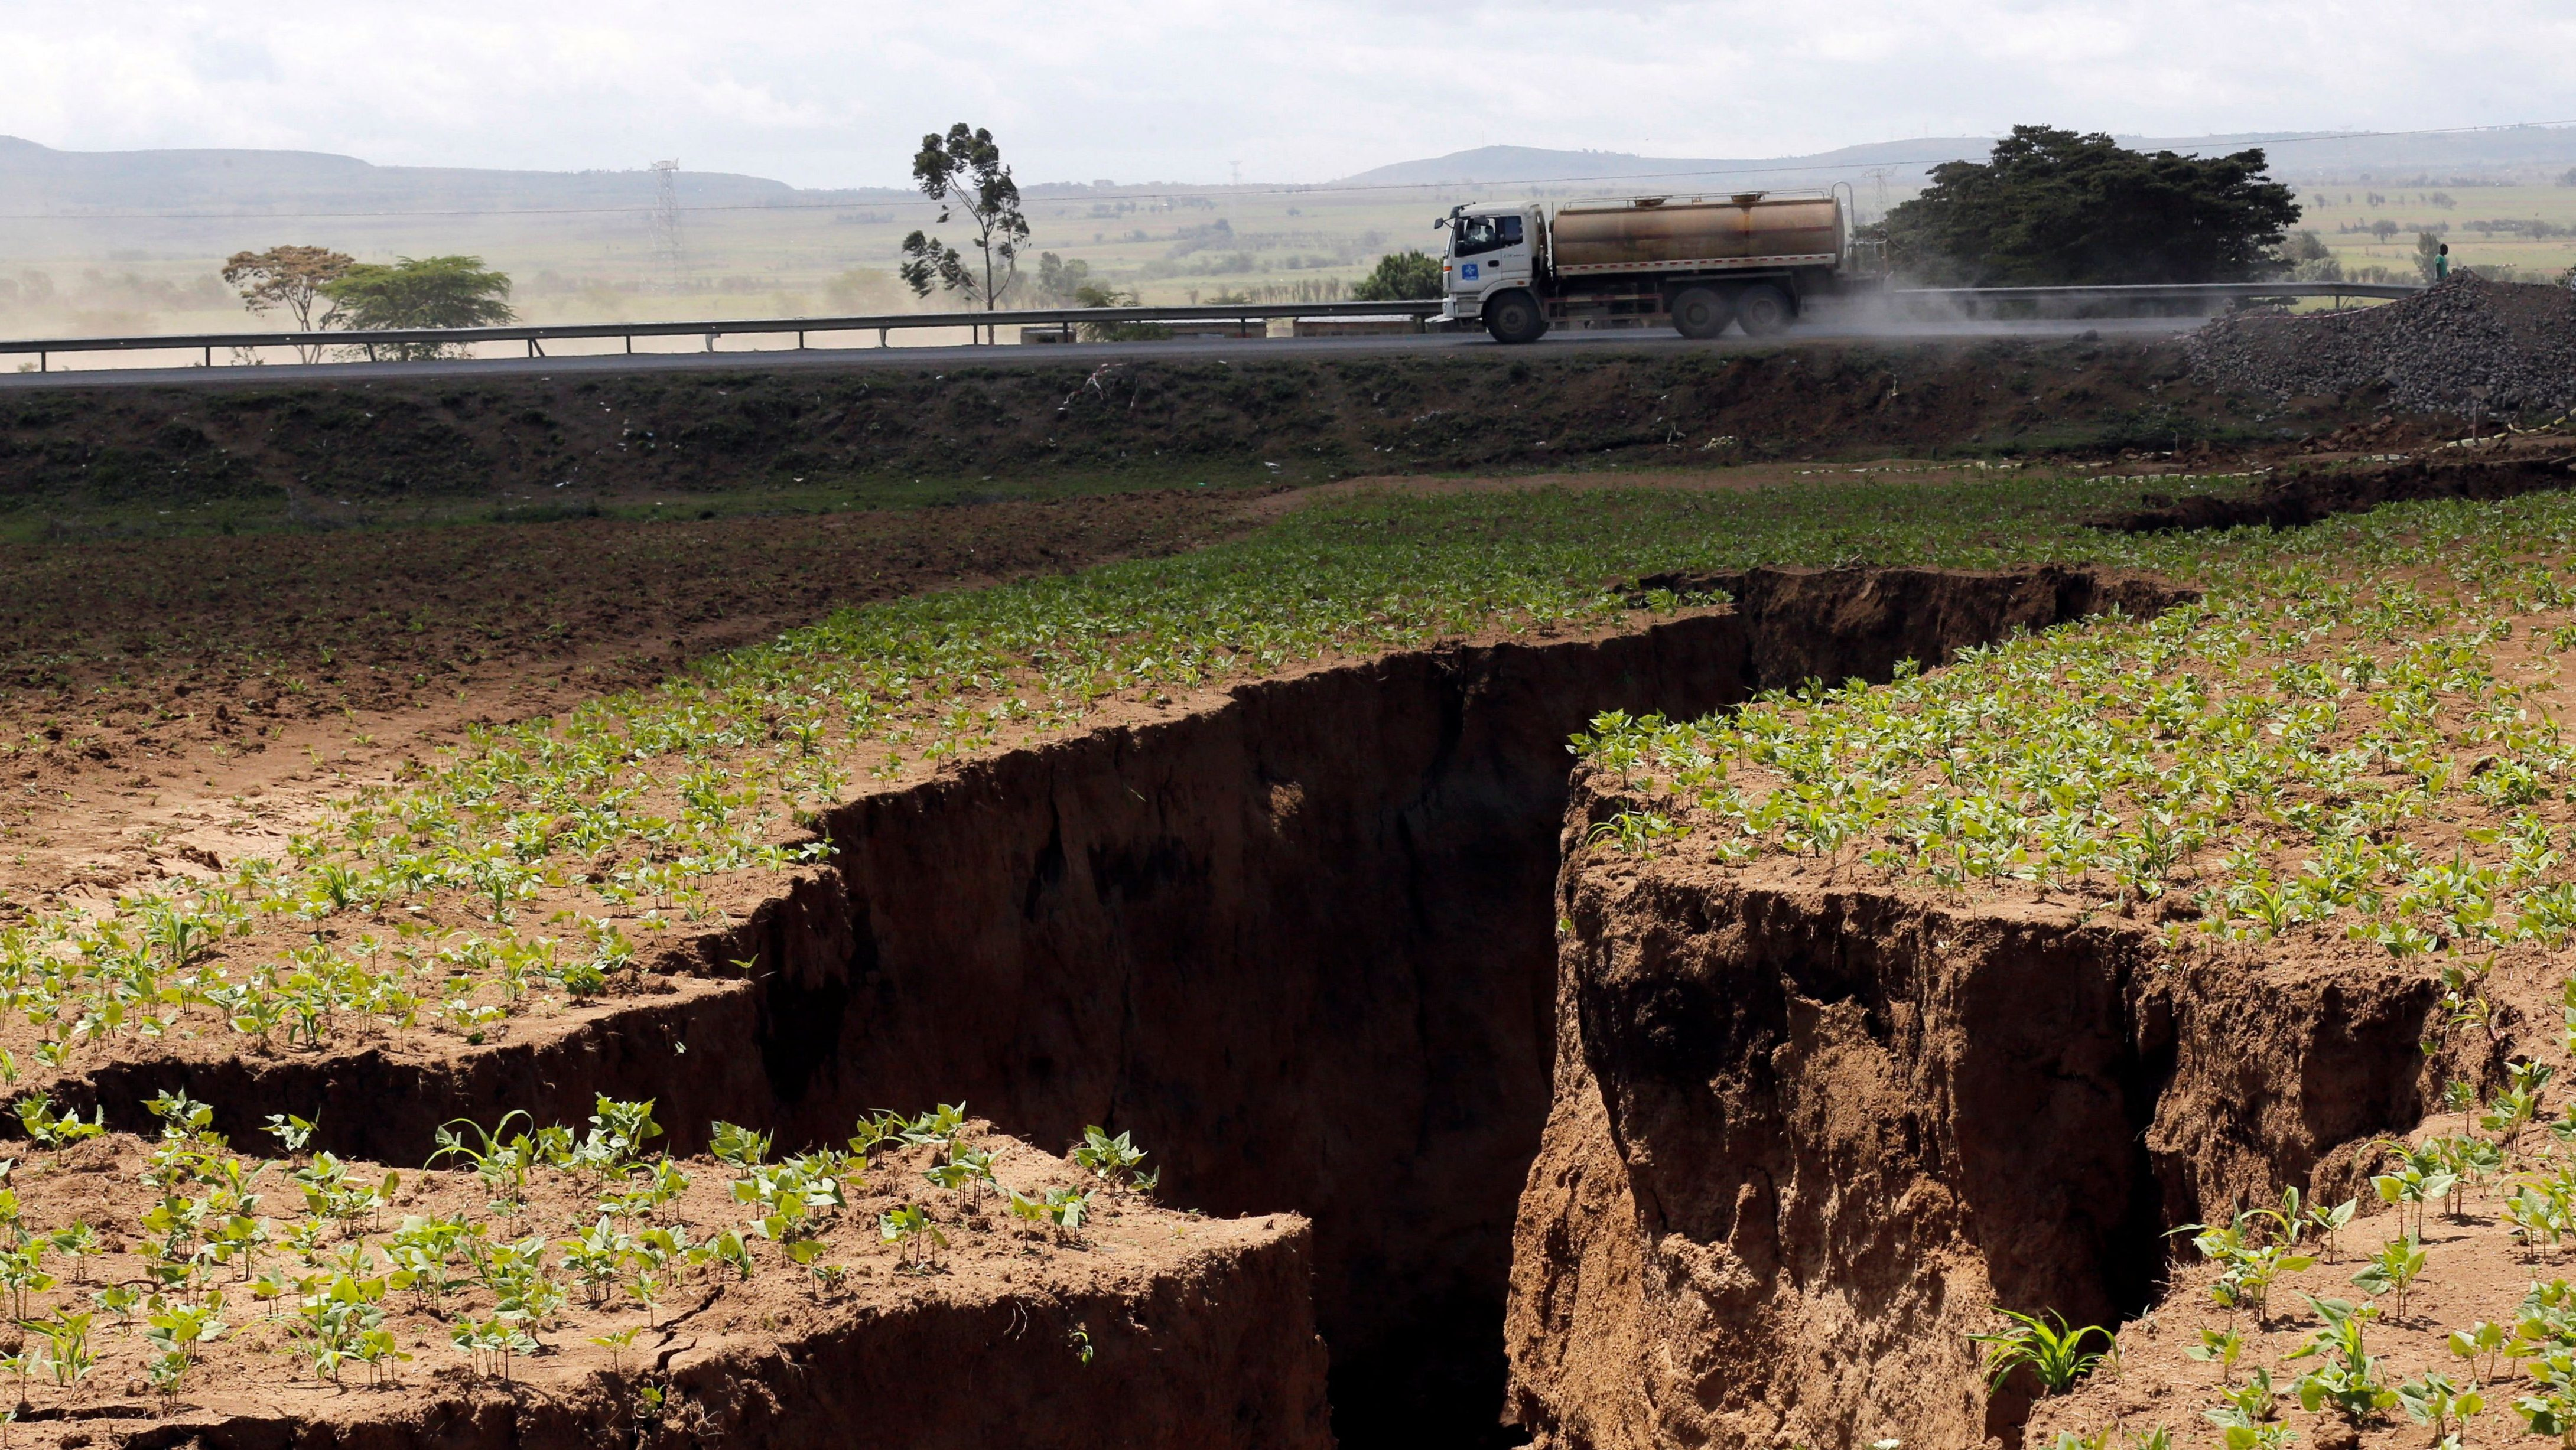 Heavy rains in Kenya reveal a crack that shows Africa will split into two continents